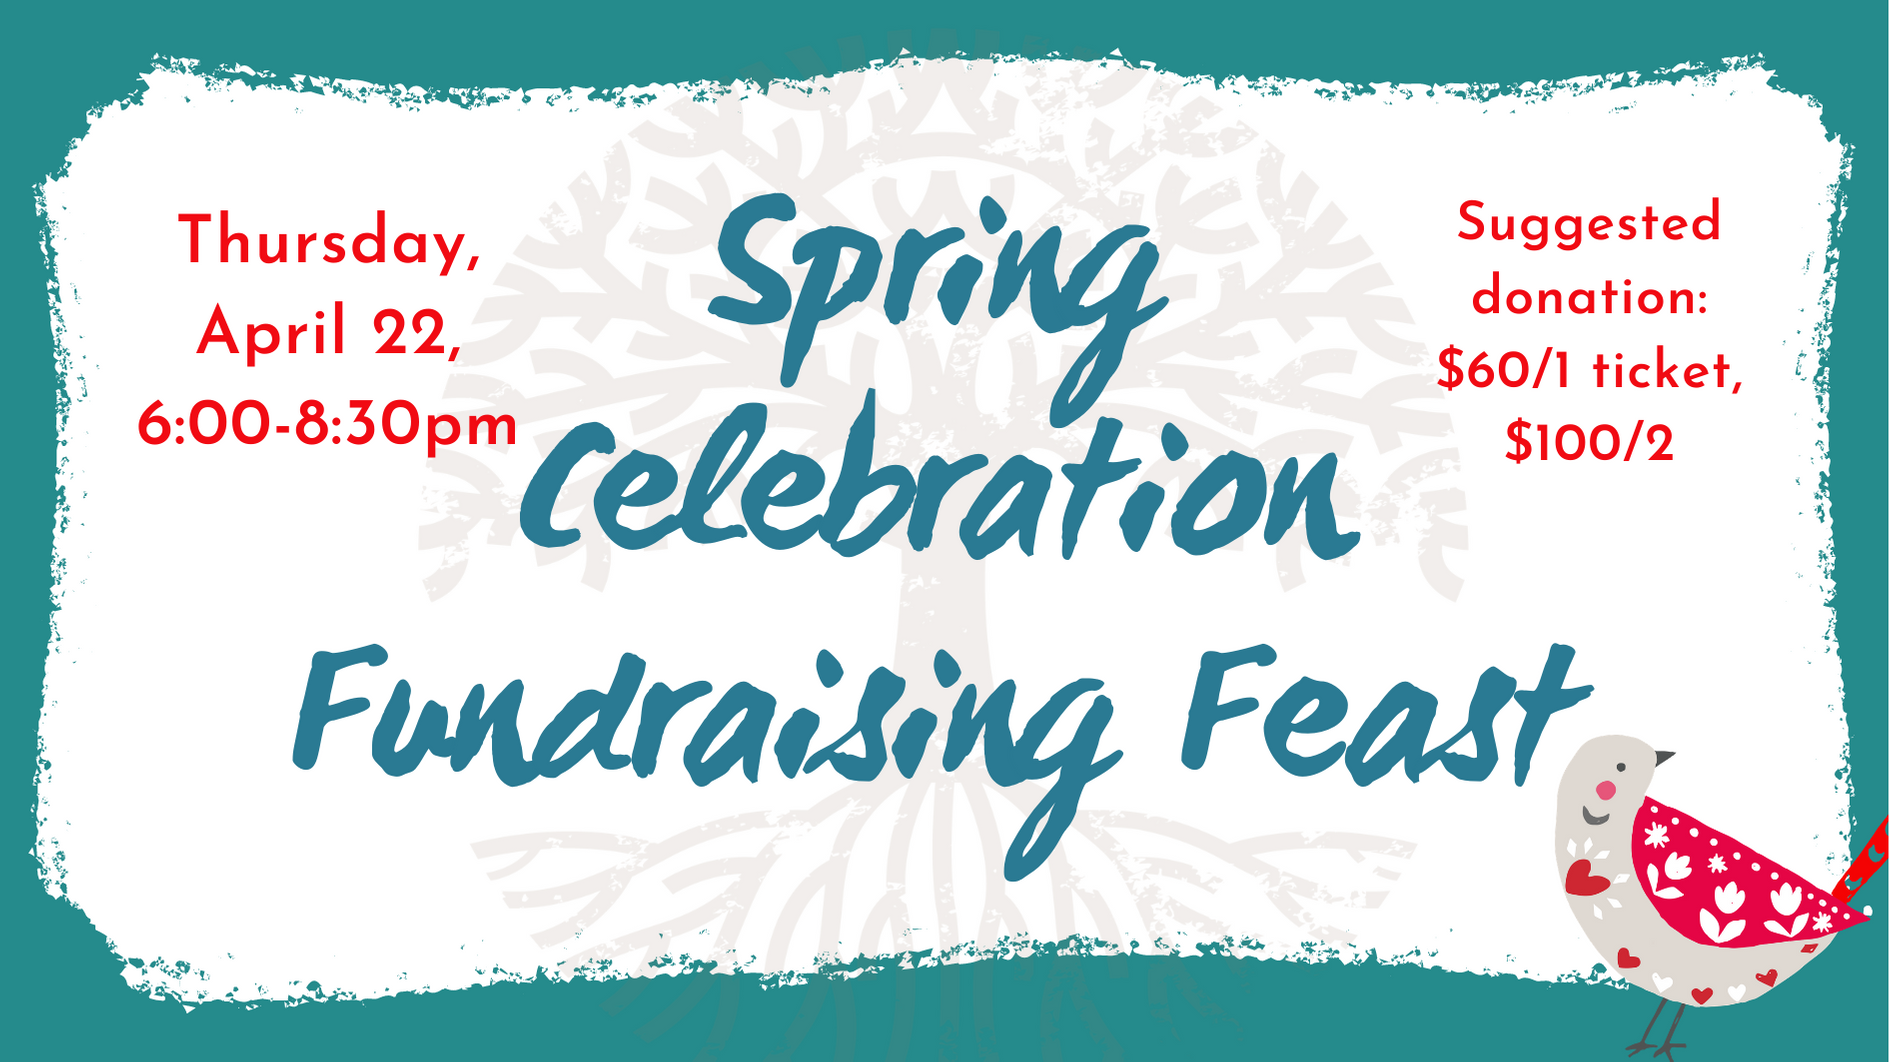 Join Us for our Spring Celebration Fundraising Feast!